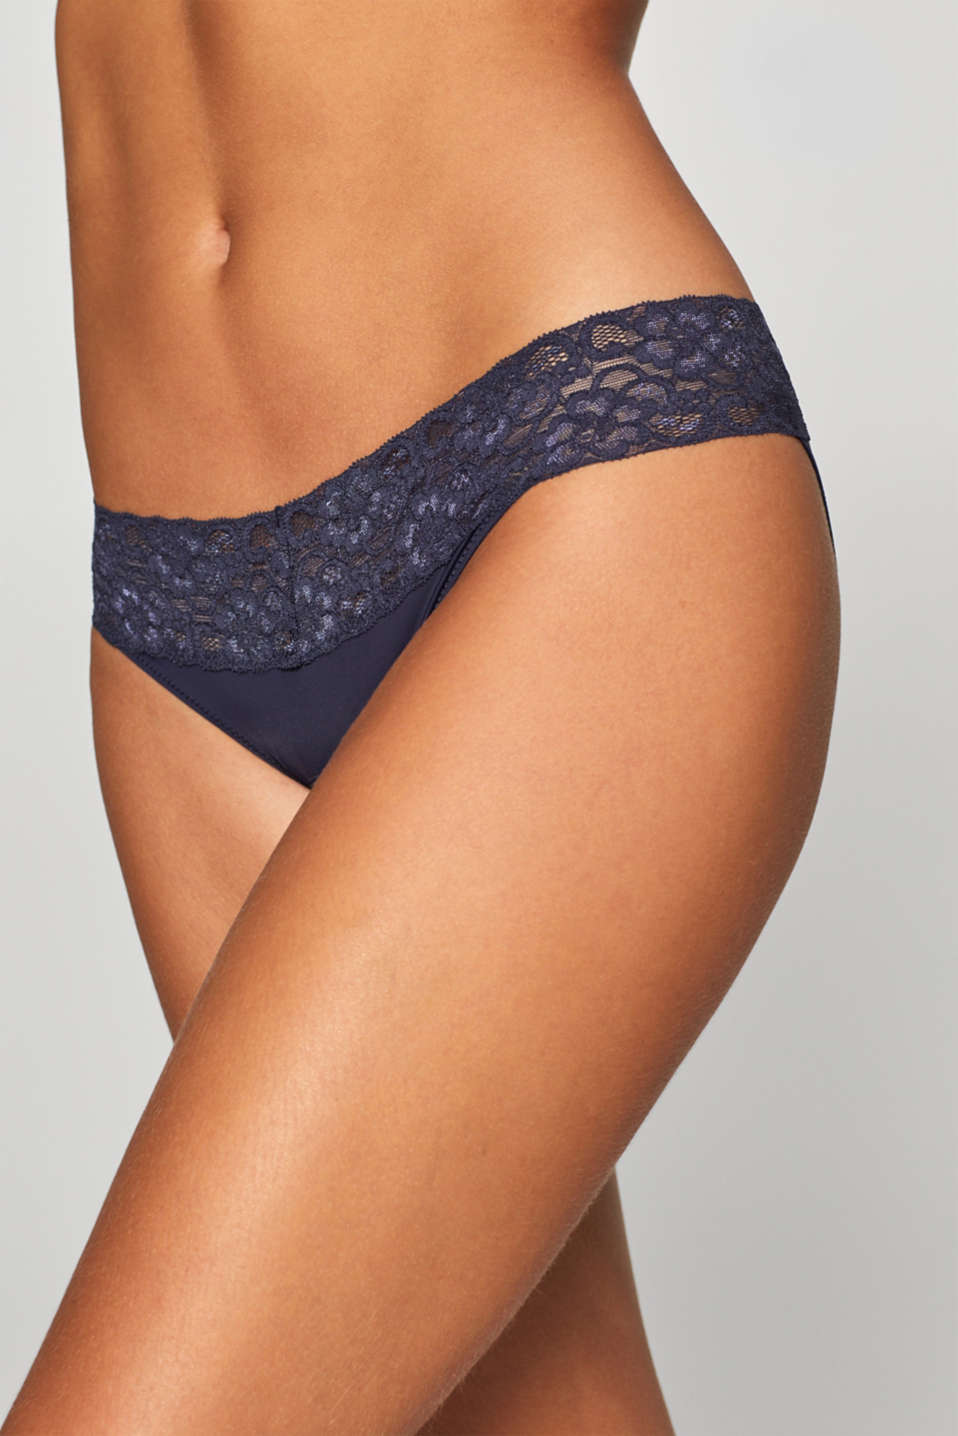 Hipster briefs made of microfibre fabric with a lace waistband